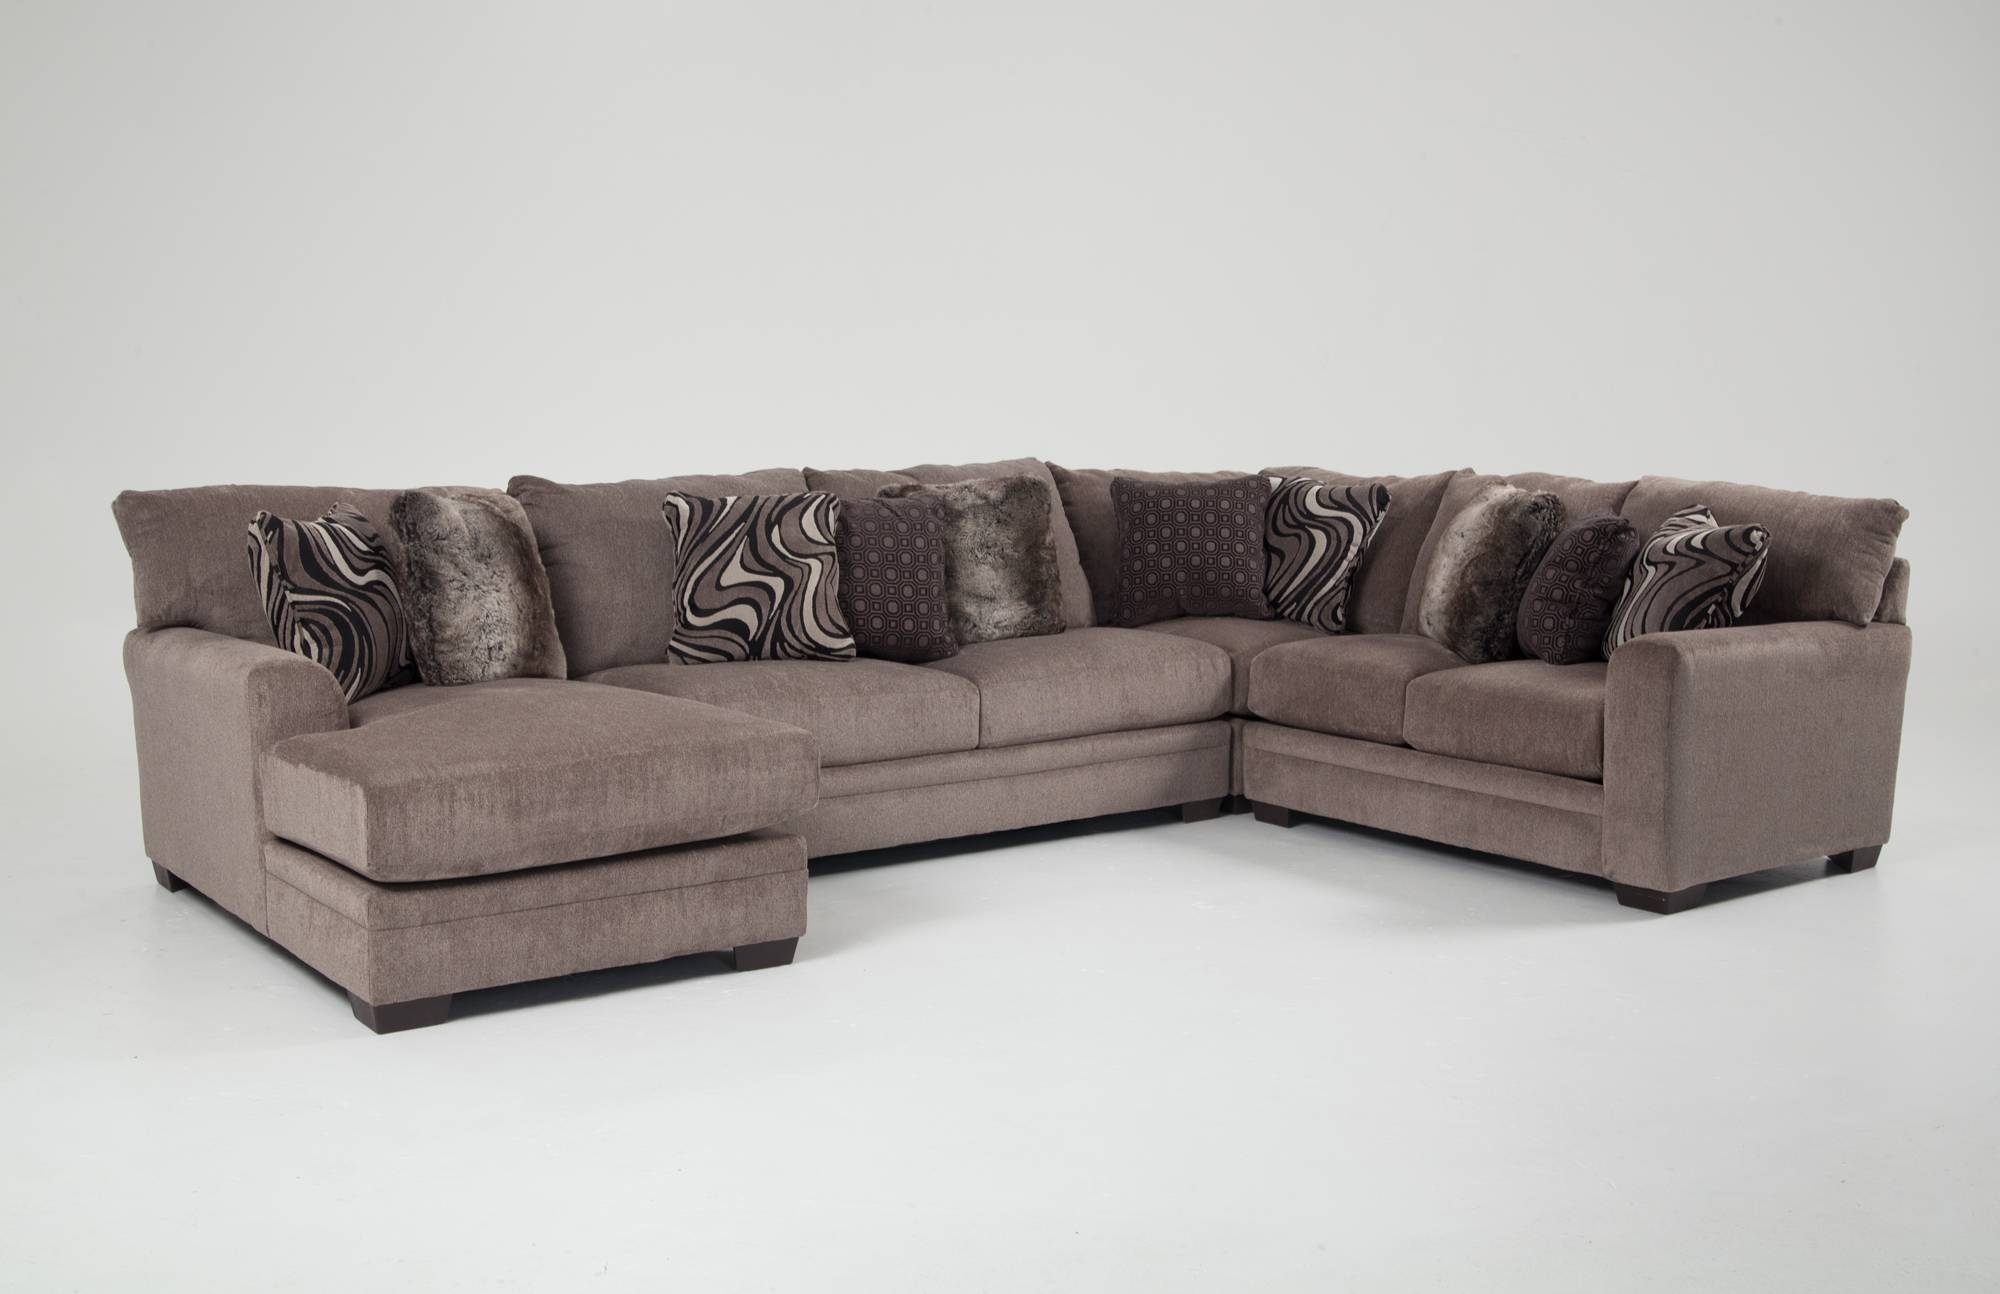 Home Designs : Bobs Living Room Sets Ikea Leather Couch Bobs intended for Sectional Sofas Under 700